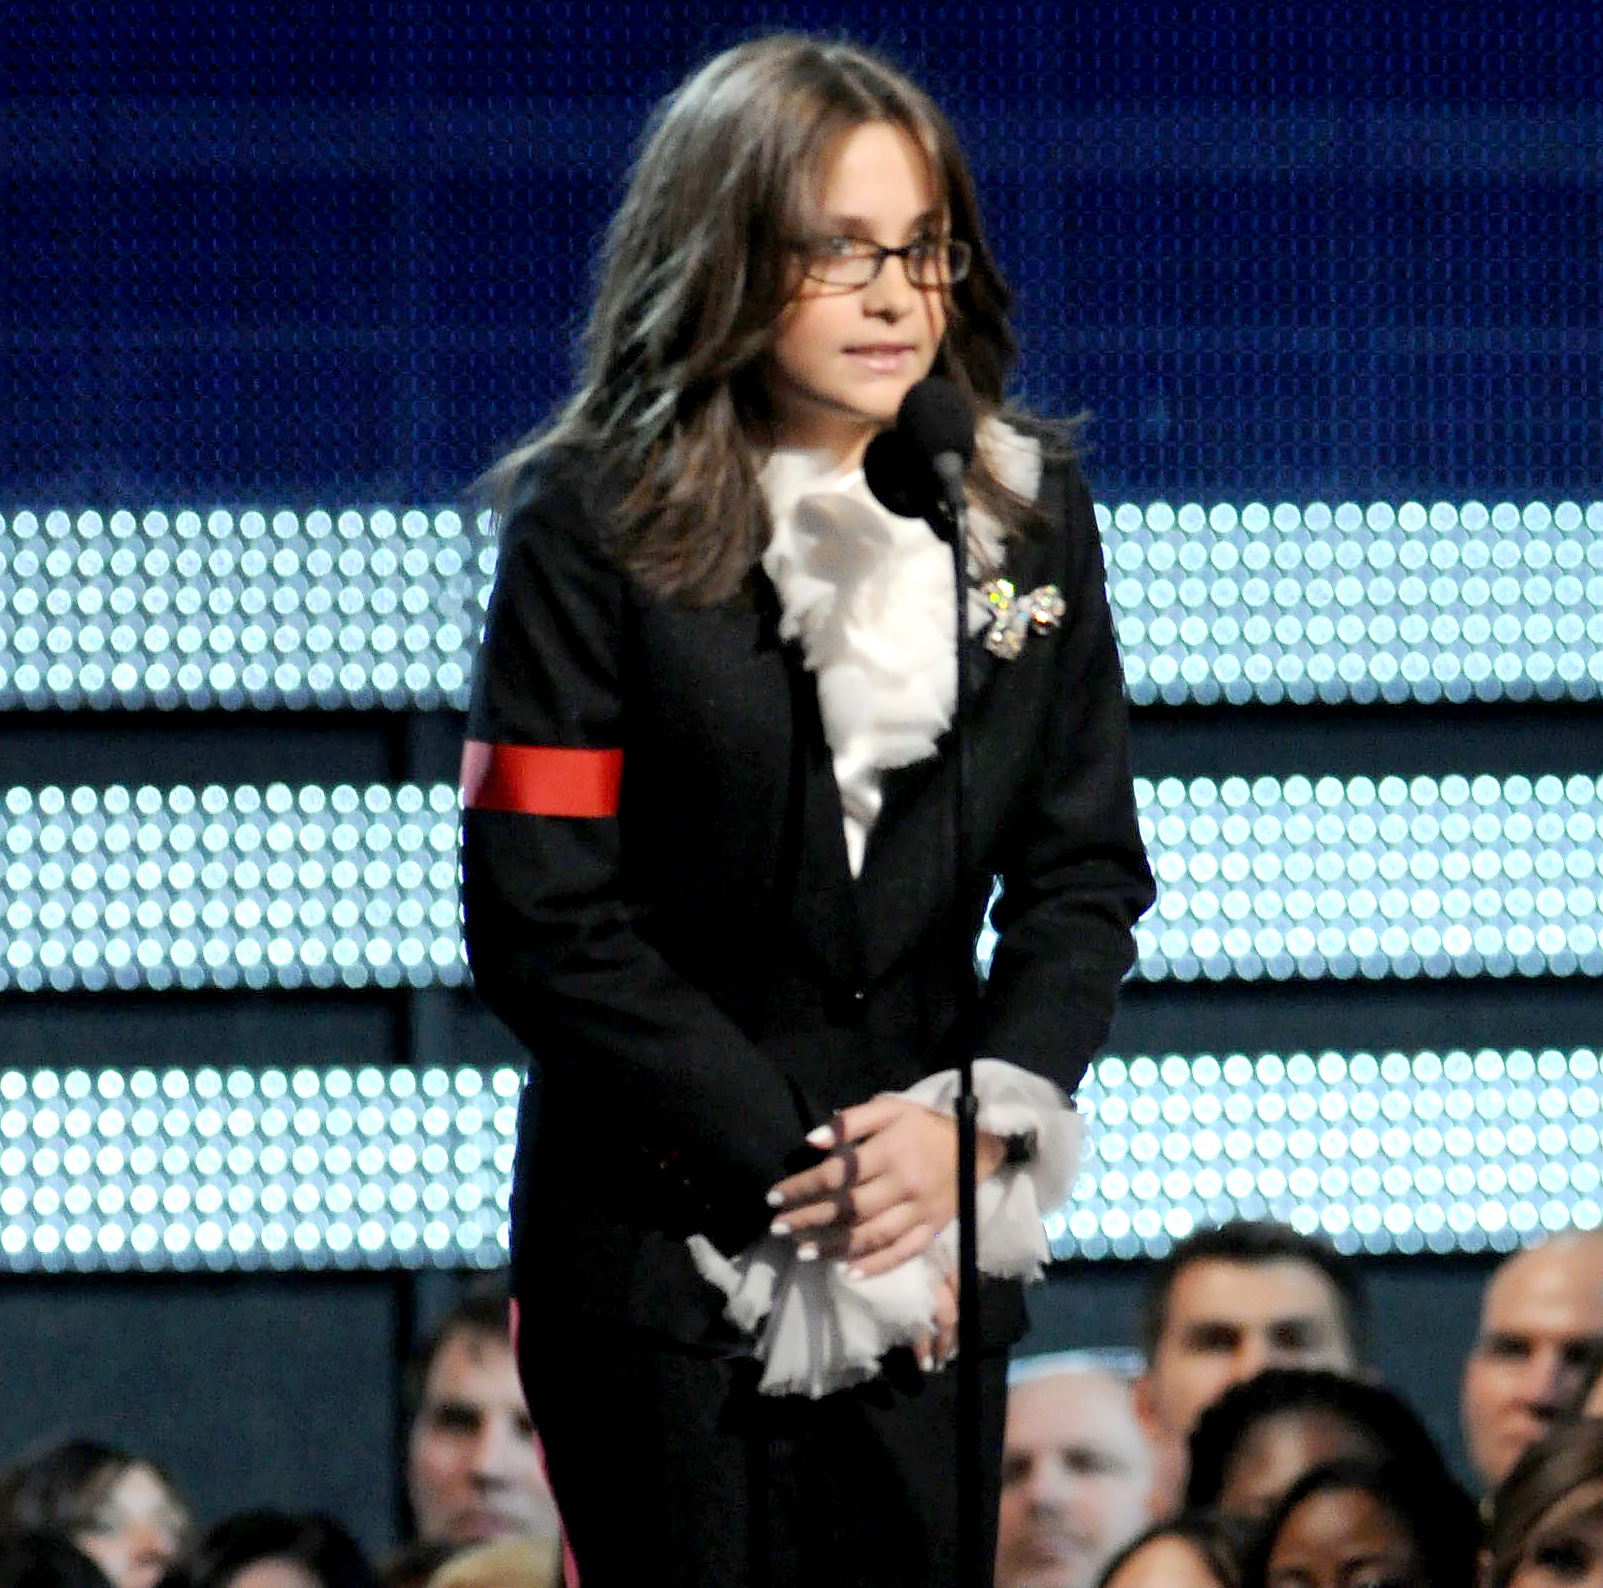 Paris Jackson onstage during the 52nd Annual GRAMMY Awards held at Staples Center on January 31, 2010 in Los Angeles, California.